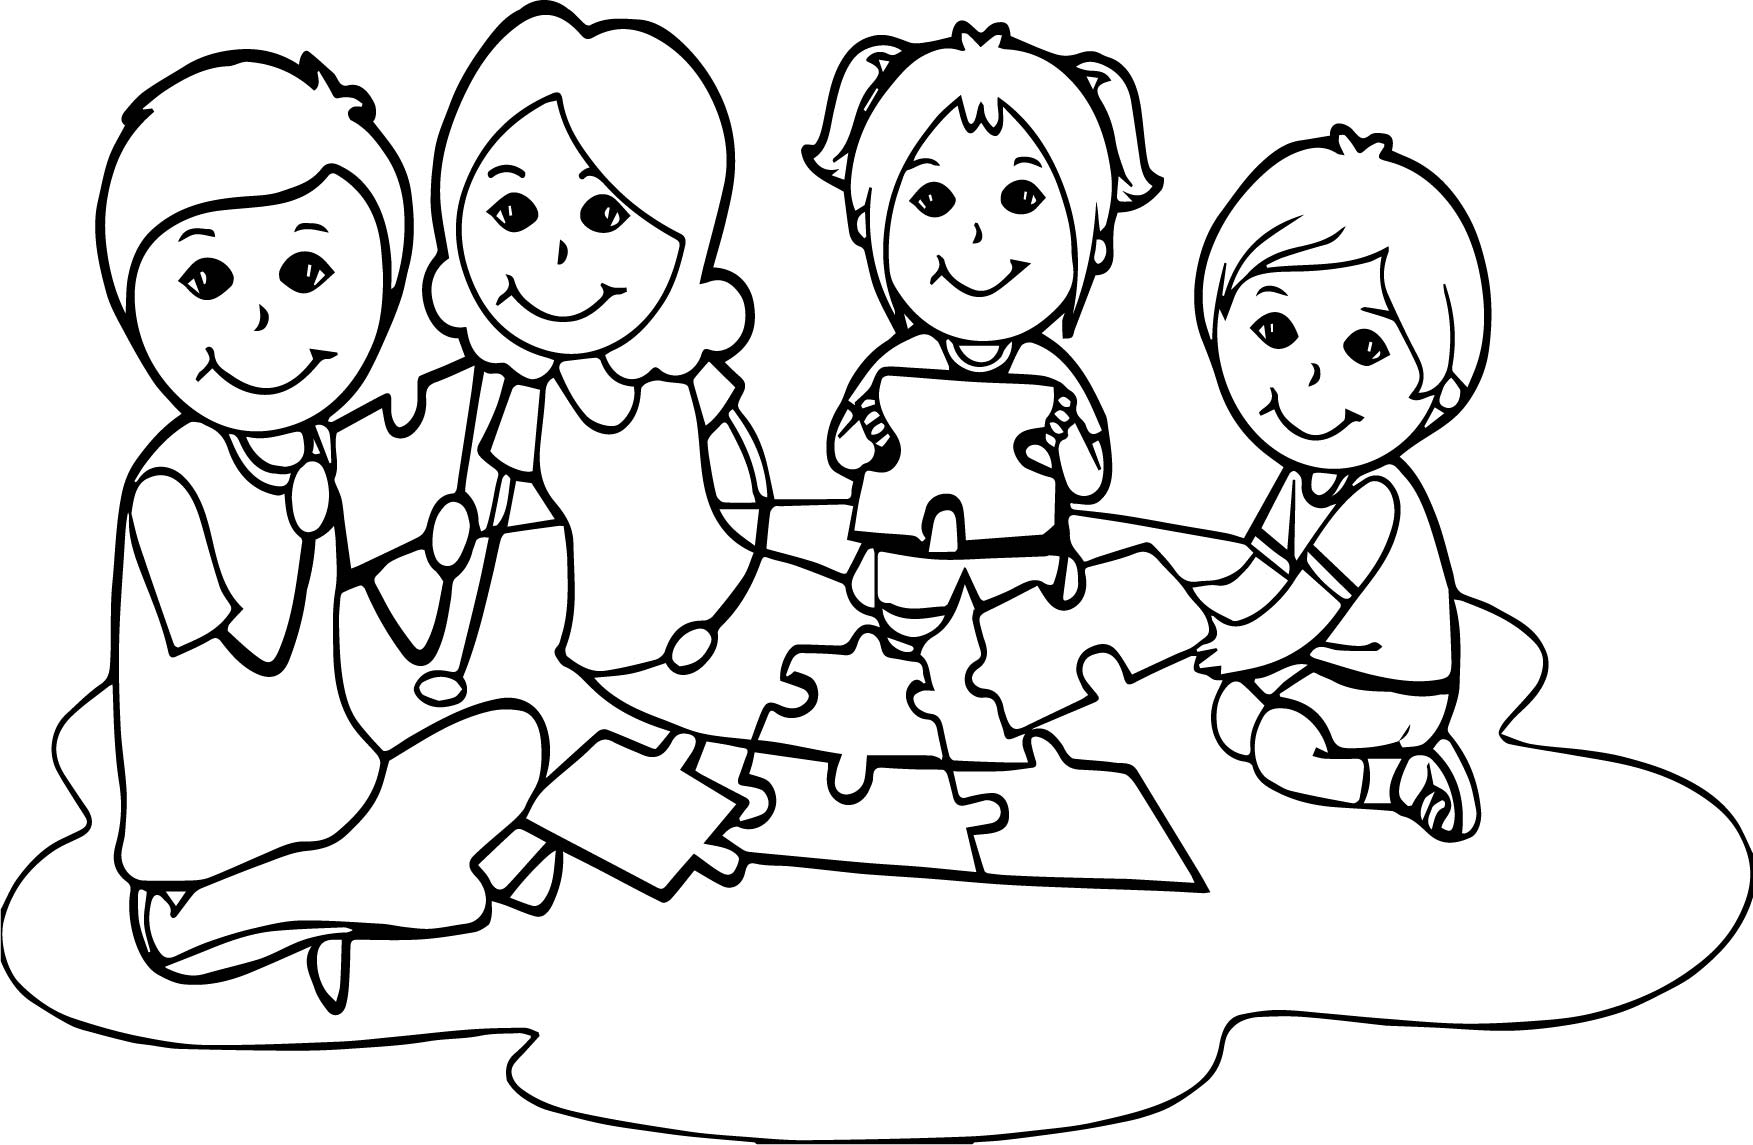 Puzzle Coloring Pages. Elegant Hidden Picture Coloring Pages Hidden ...